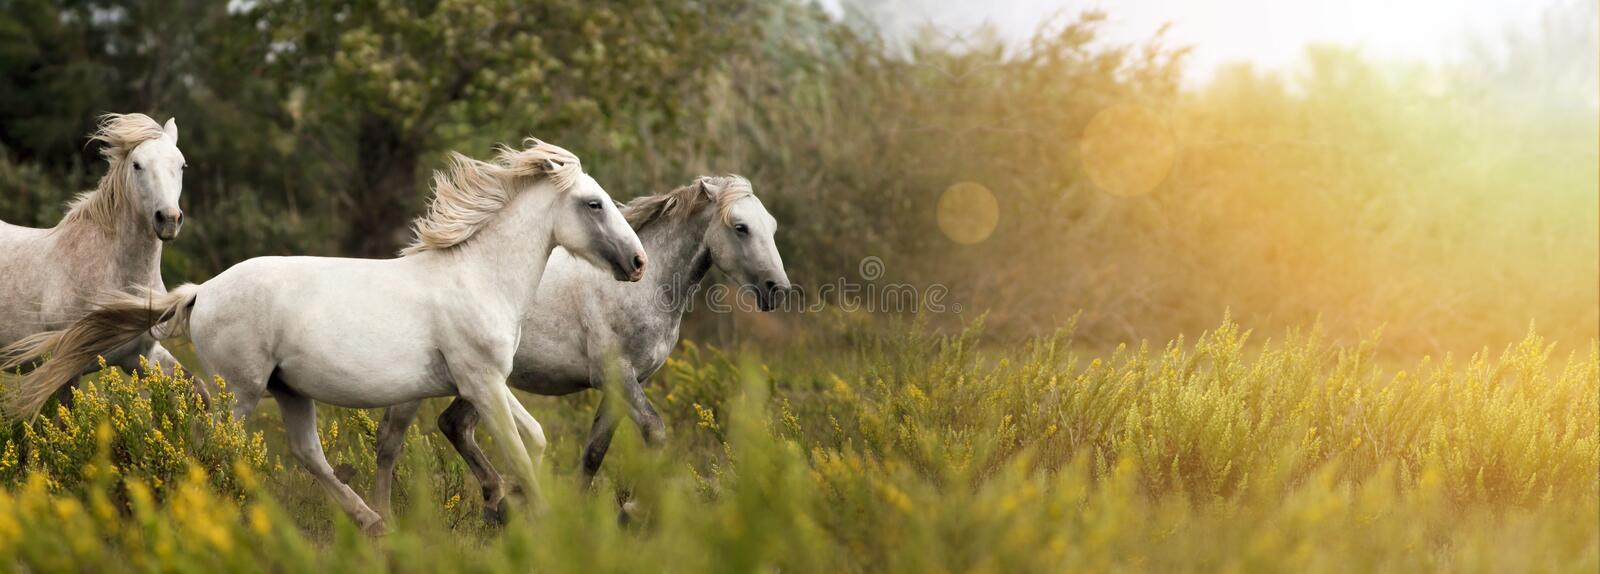 White horses running stock image